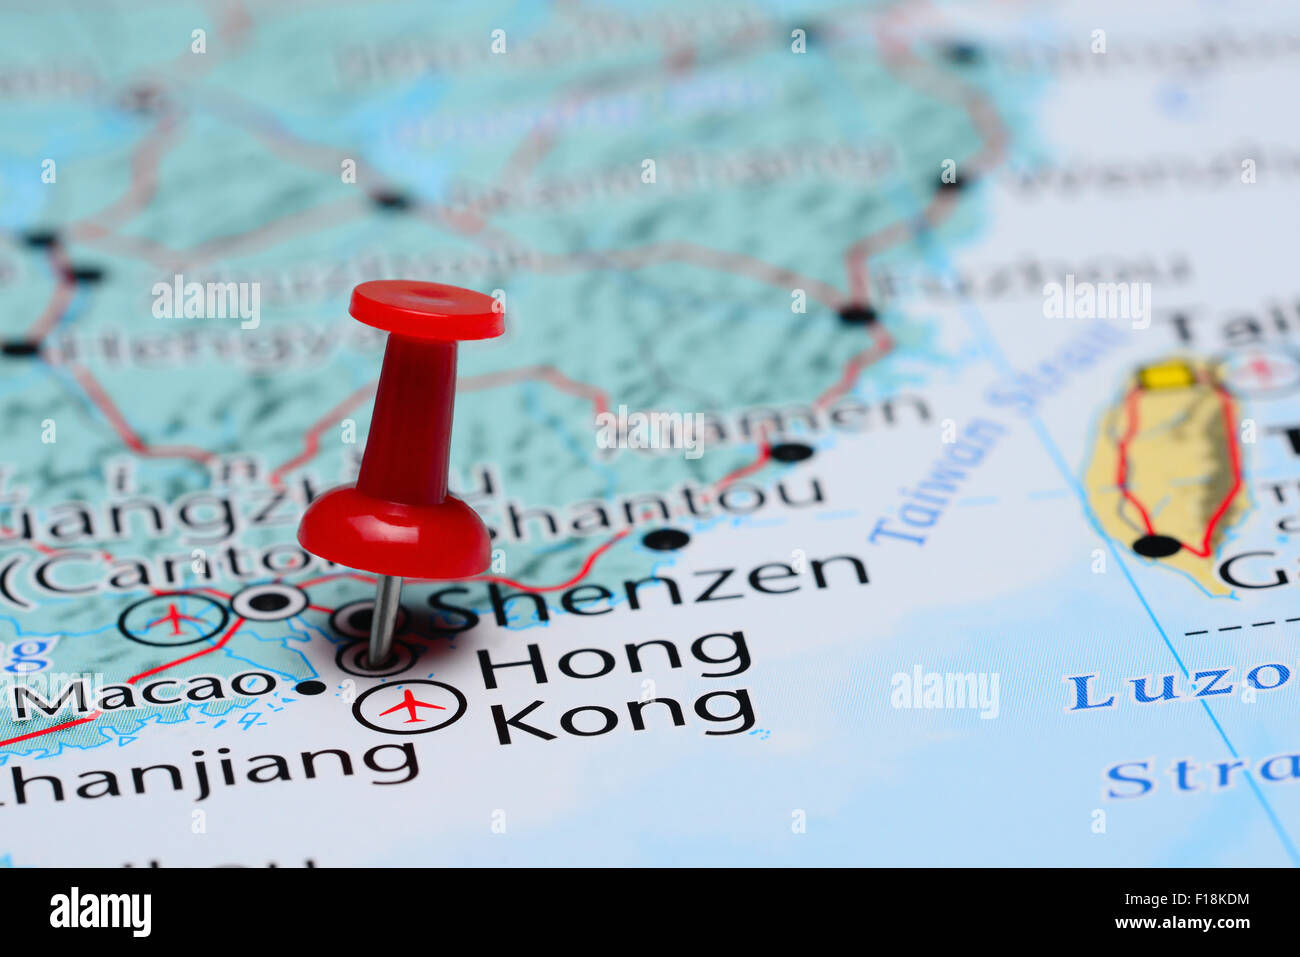 Map Of Asia Hong Kong.Hong Kong Pinned On A Map Of Asia Stock Photo 86857392 Alamy